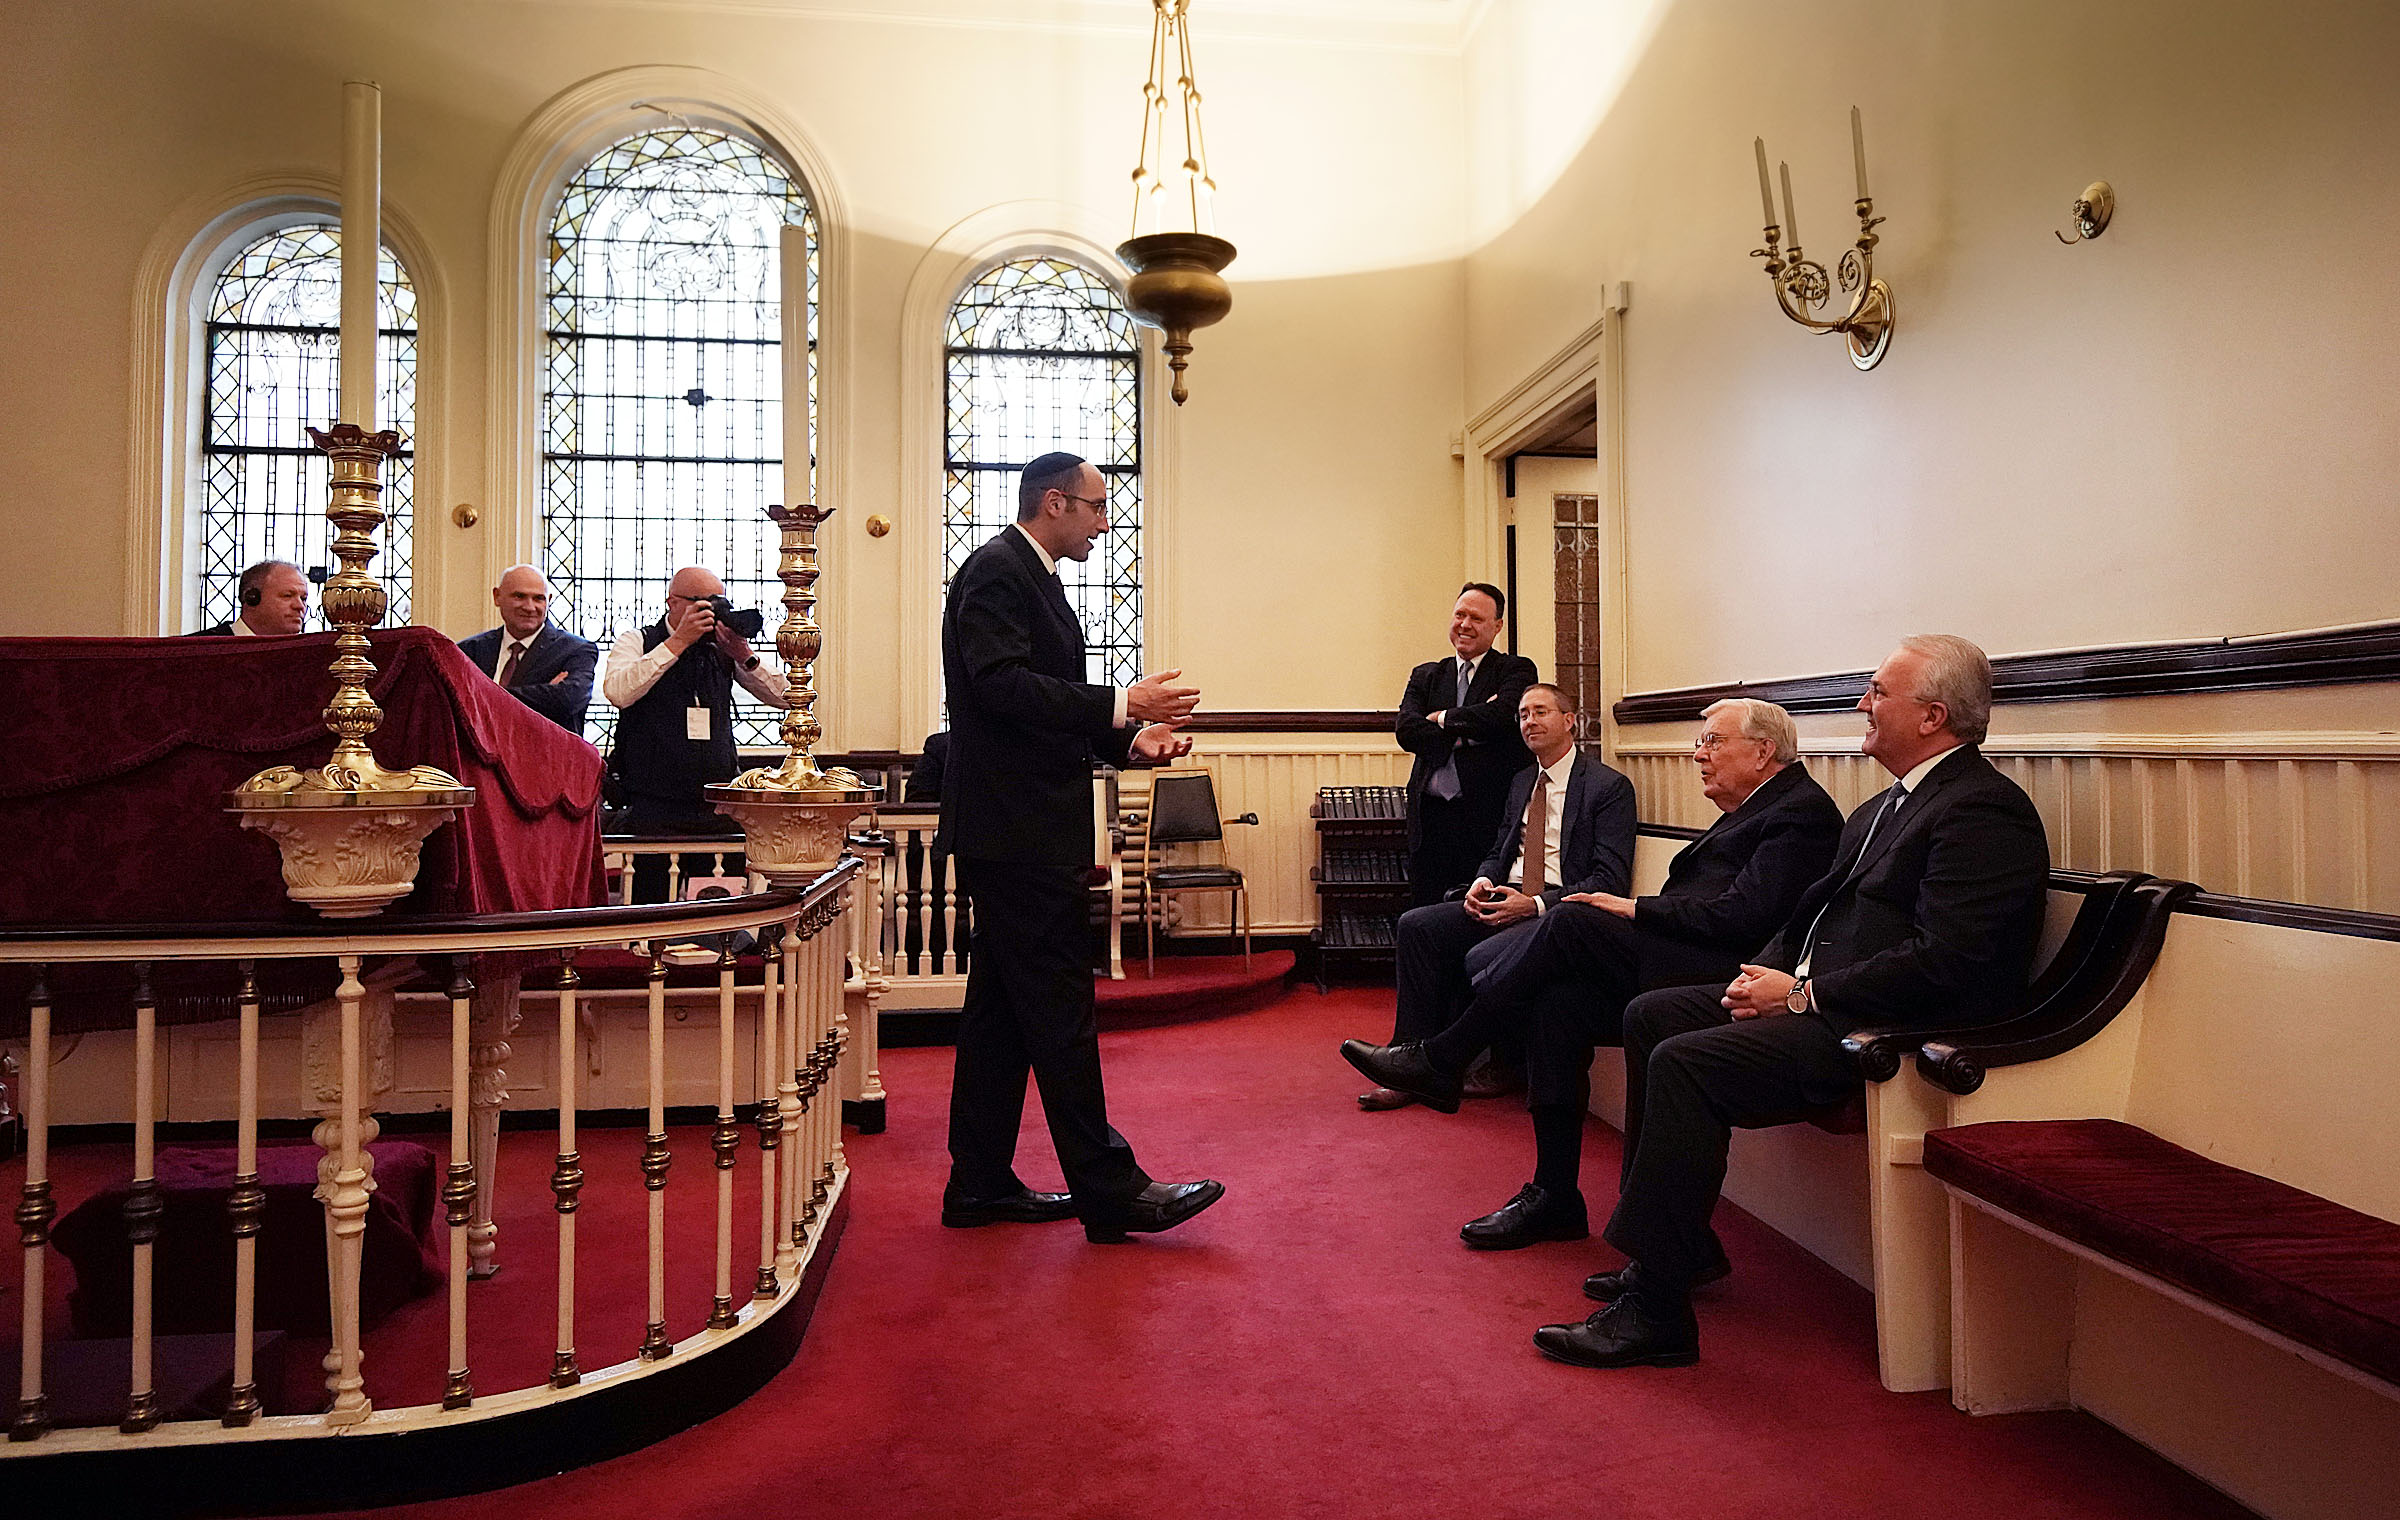 Rabbi Meir Y. Soloveichik, center, talks with President M. Russell Ballard, second from right, acting president of the Quorum of the Twelve Apostles, and Elder Jack N. Gerard, General Authority Seventy, right, during a tour of the Spanish and Portuguese Synagogue of the Congregation Shearith Israel in New York City on Friday, Nov. 15, 2019.